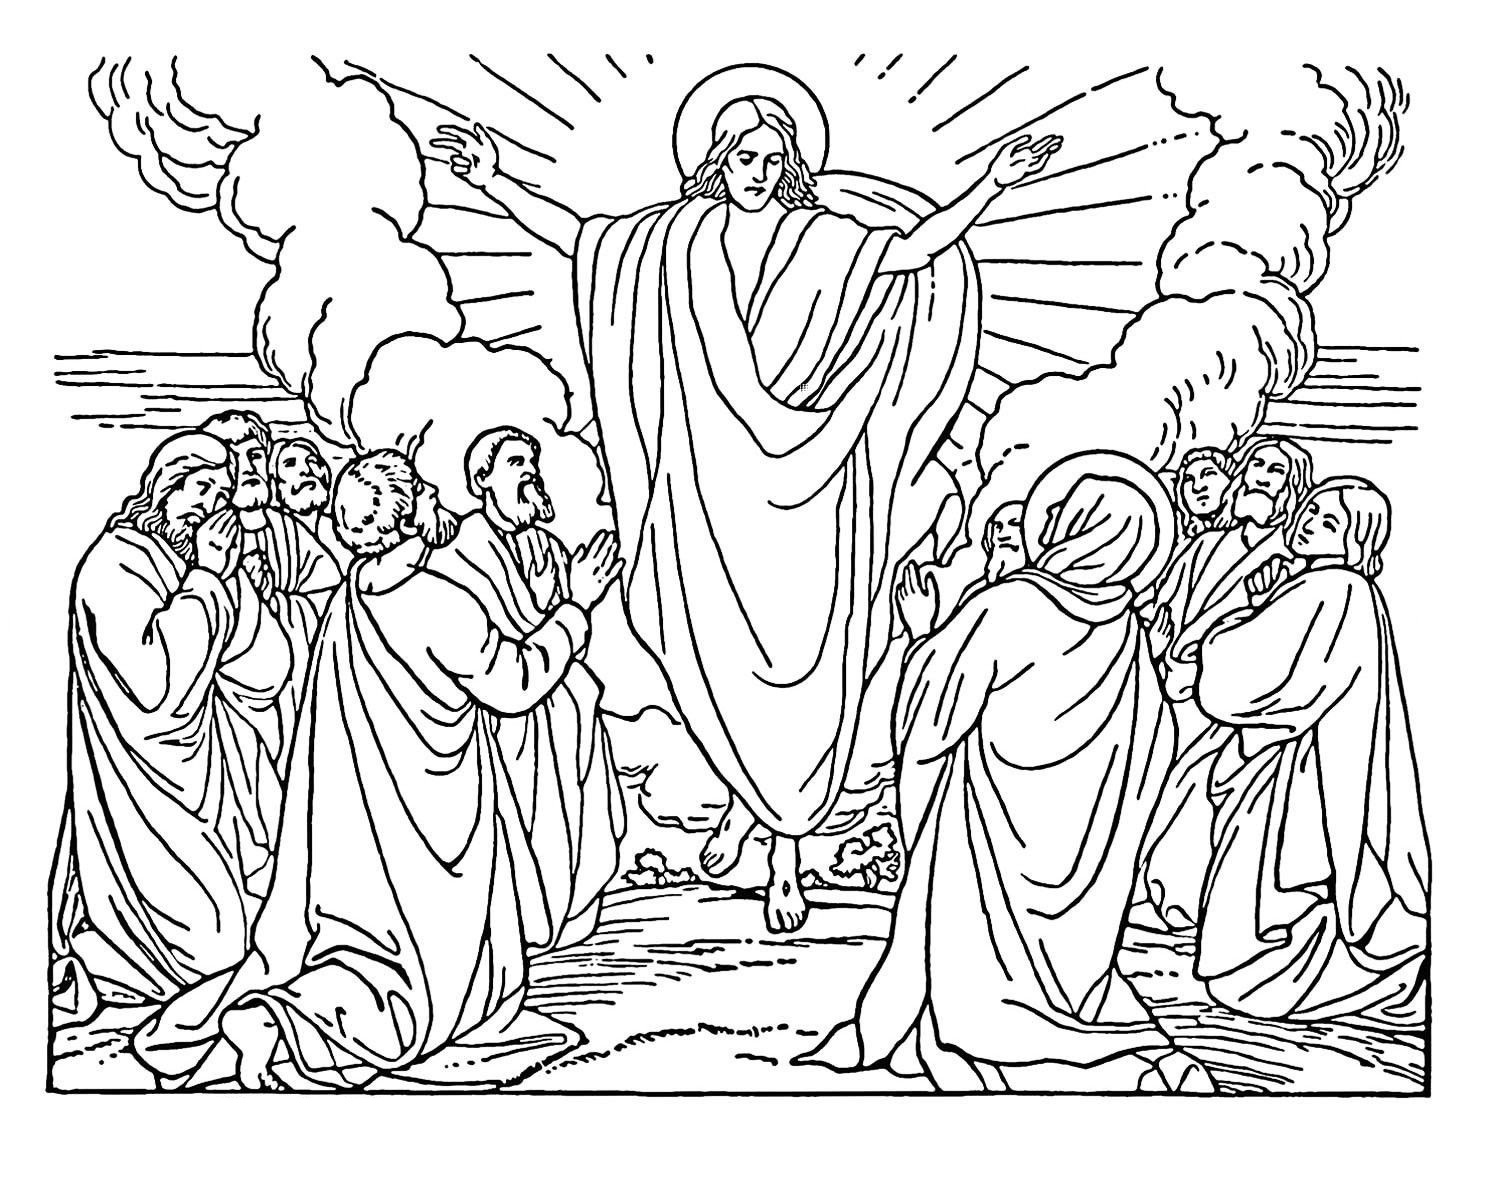 Free Bible Story Coloring Pages For Kids